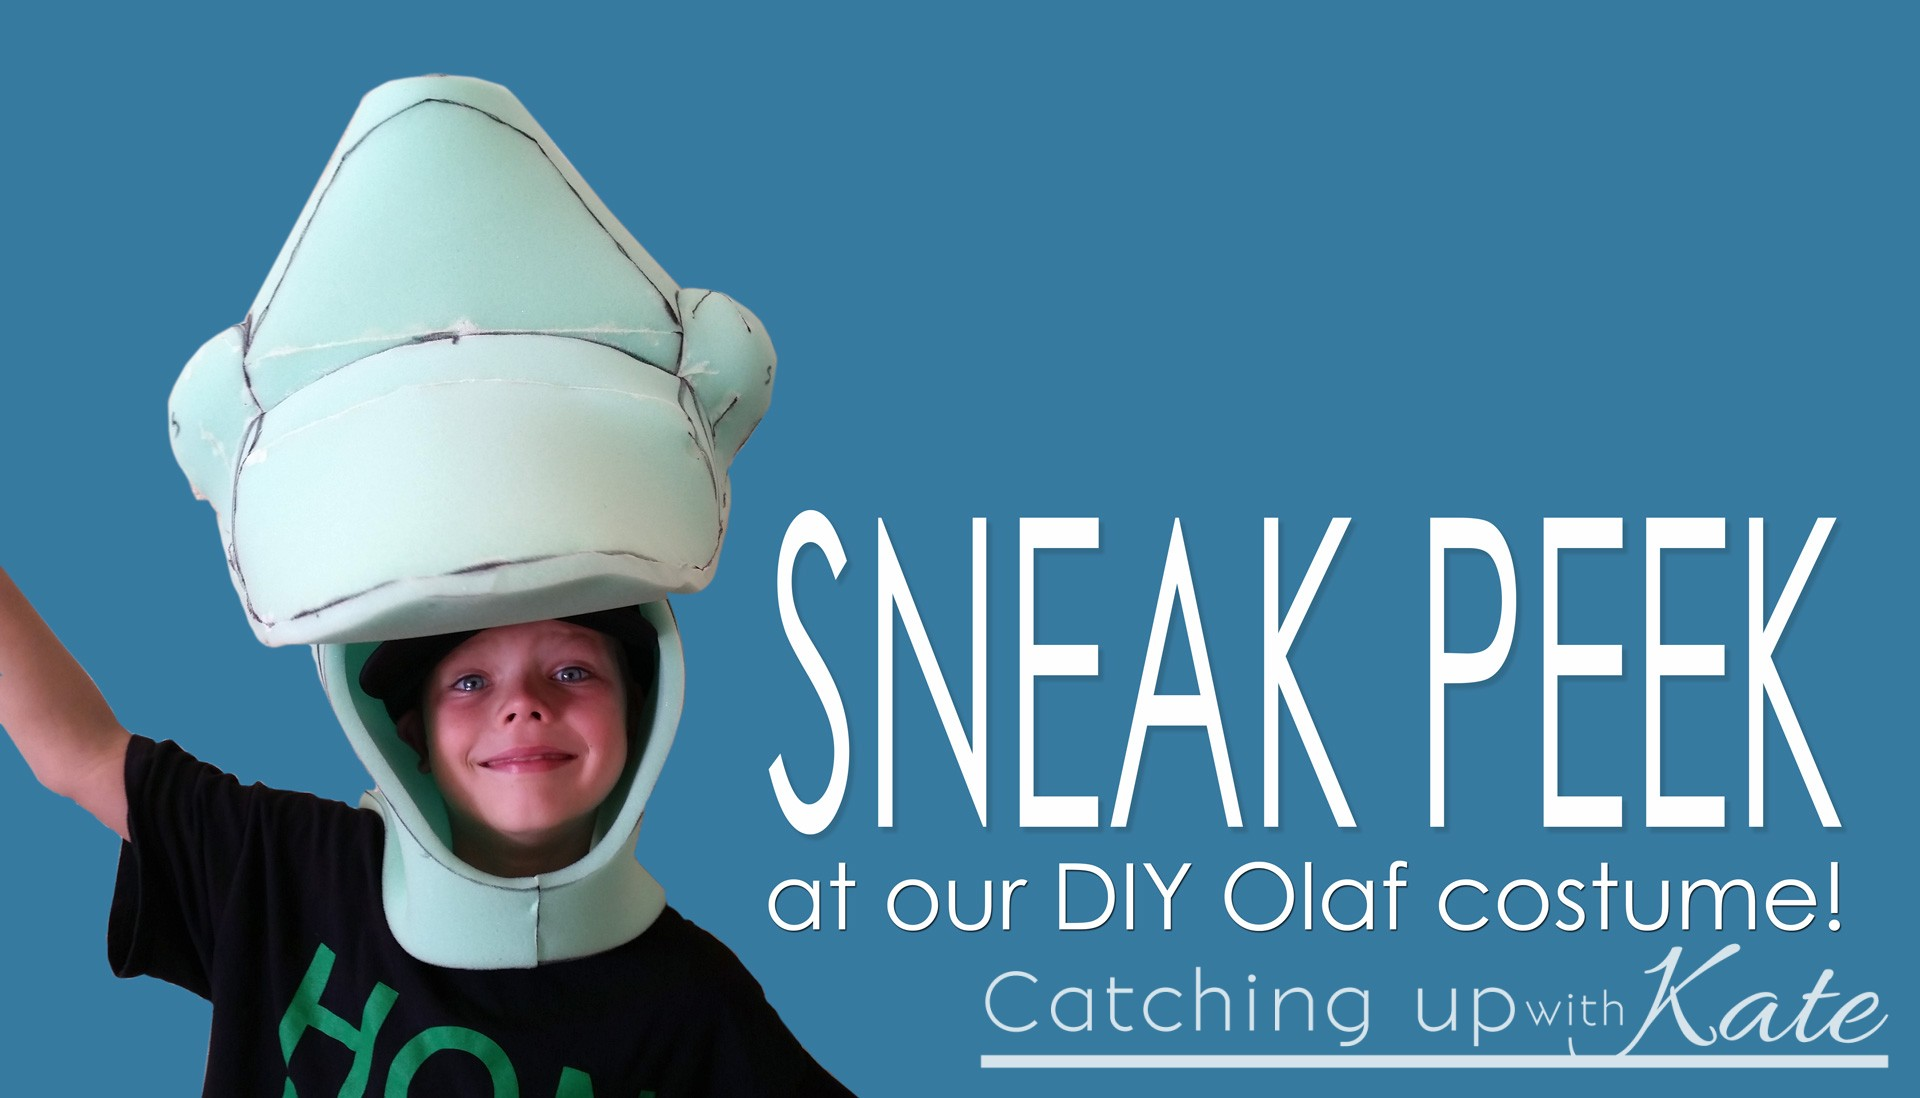 Sneak Peek at our DIY Olaf Halloween Costume